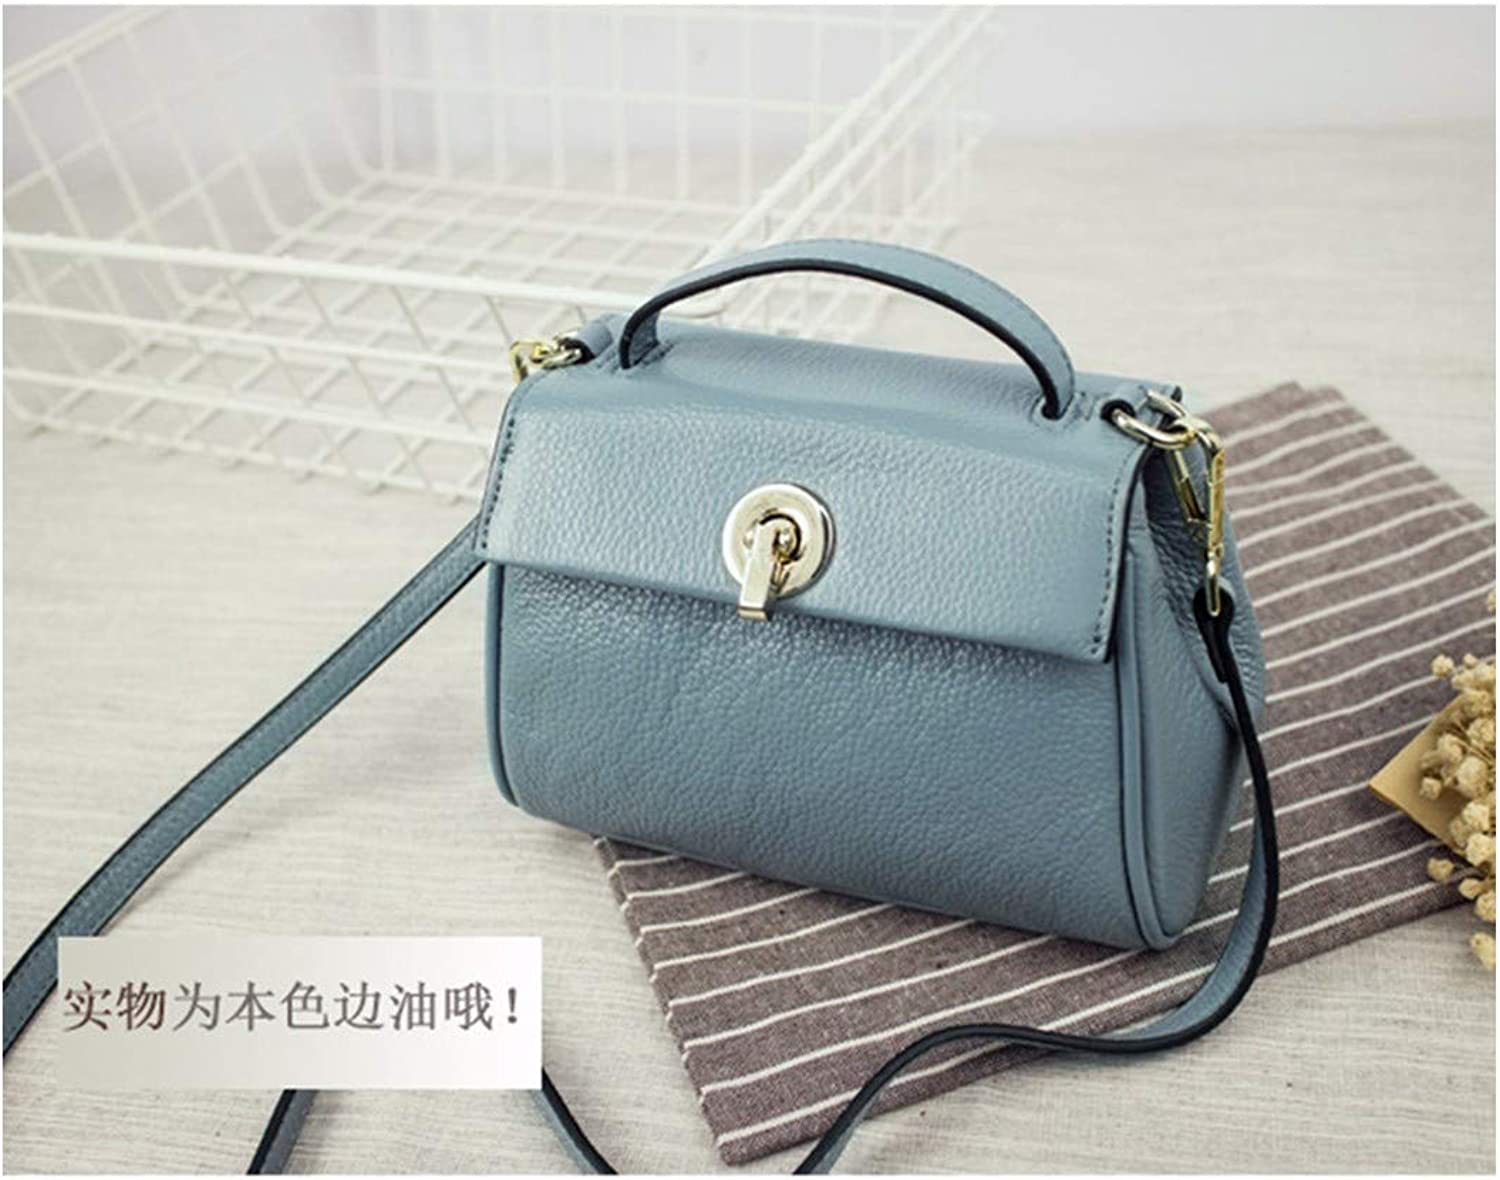 XUZISHAN Lady Leder Bag Single Schulter- Schulter- Schulter- Messenger Crossbody Fashion Handtasche Kreuz Square B07L2X4WBW 72f81b